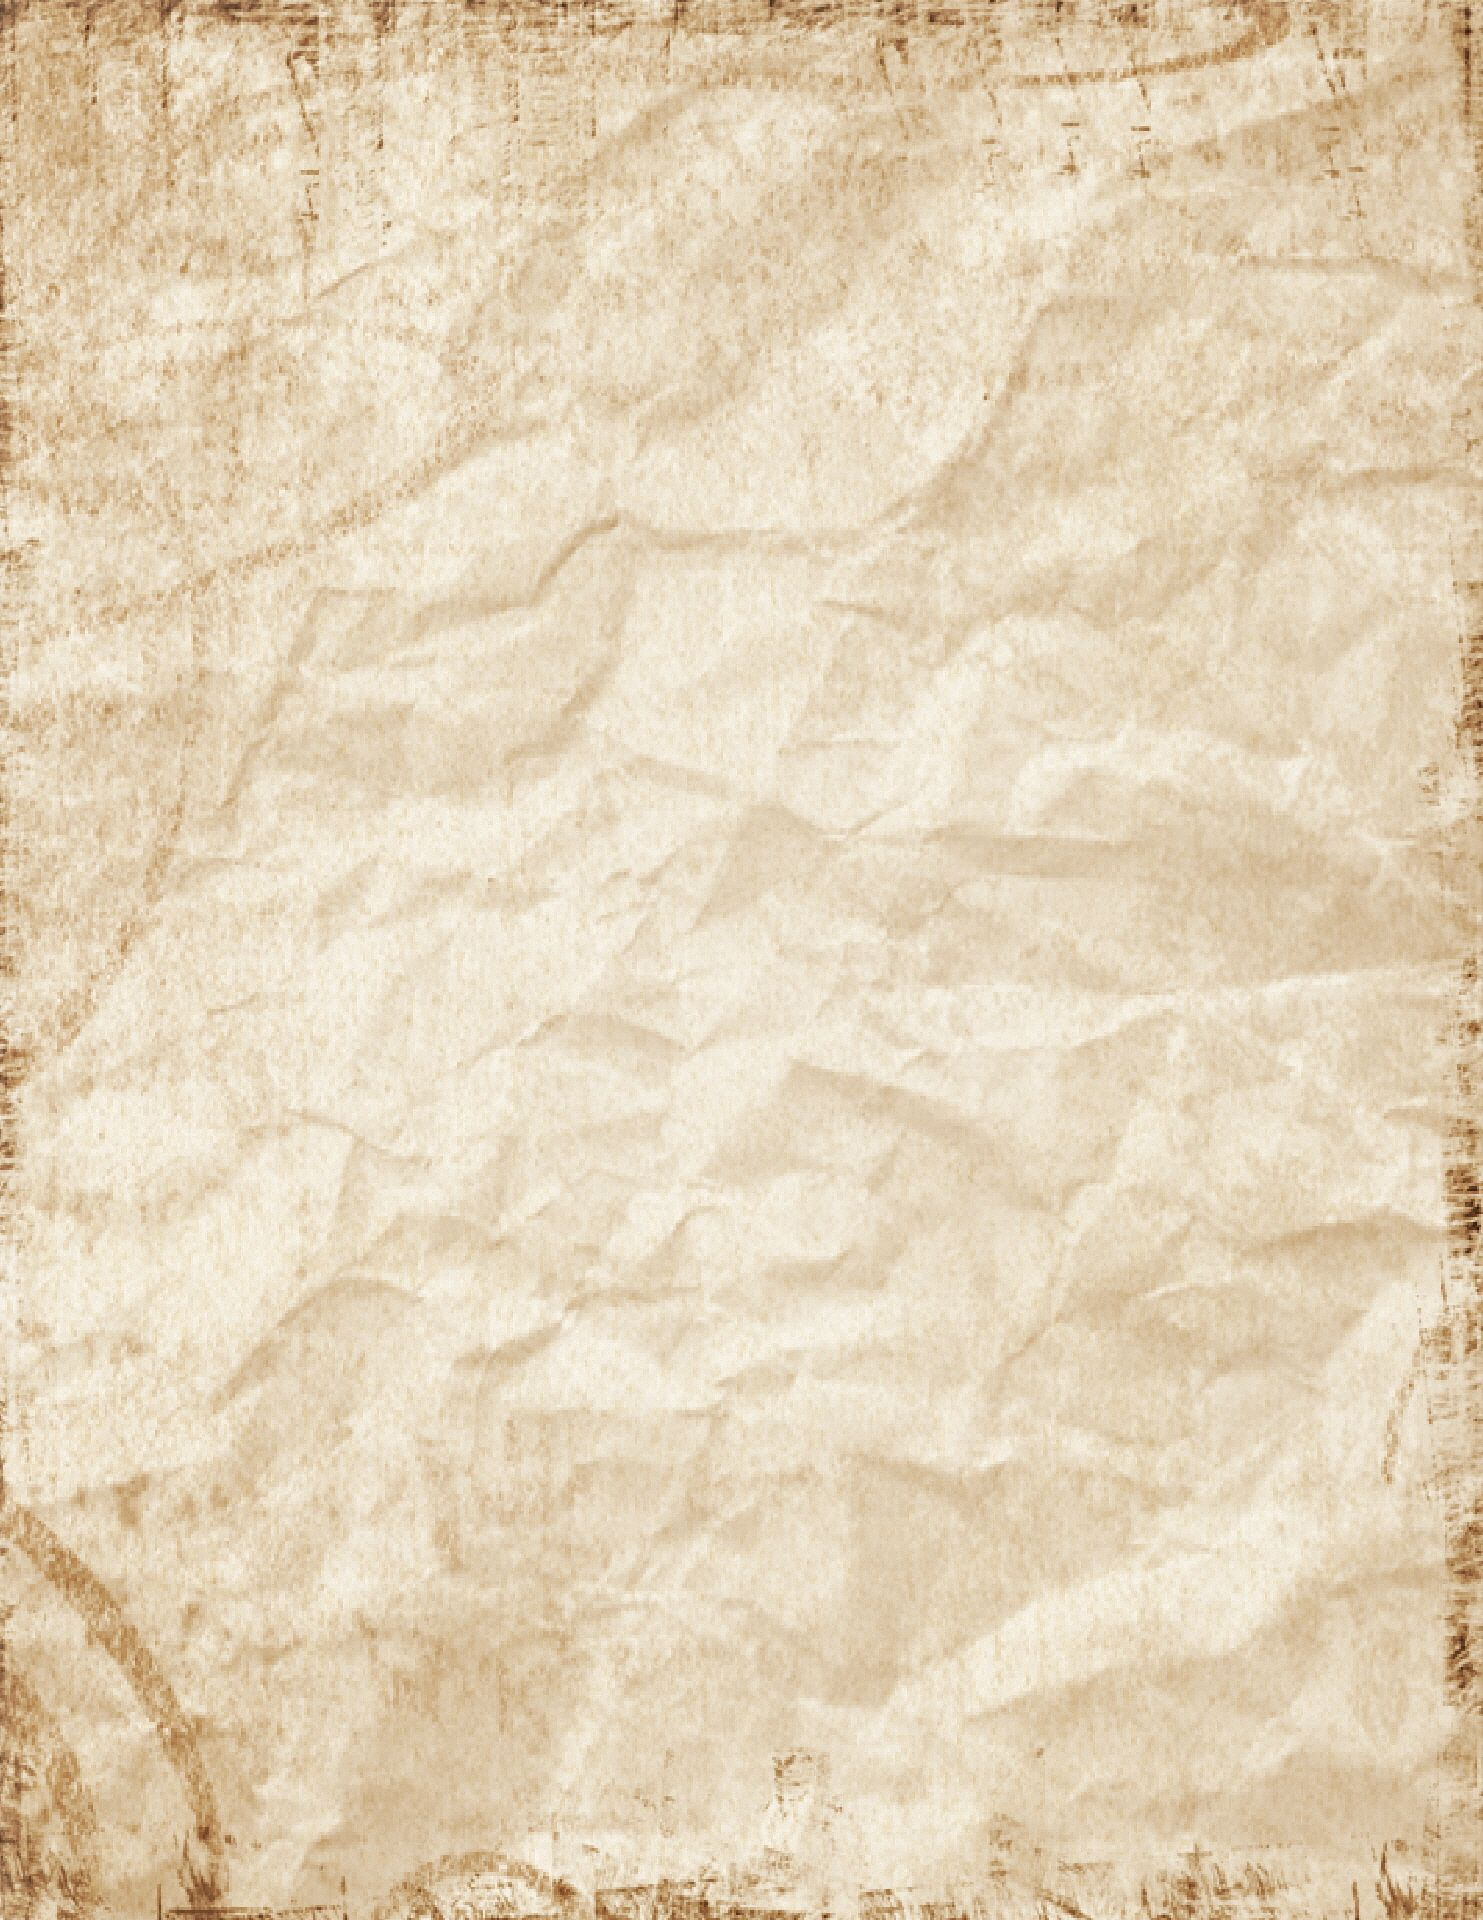 old paper texture 2 - photo #25